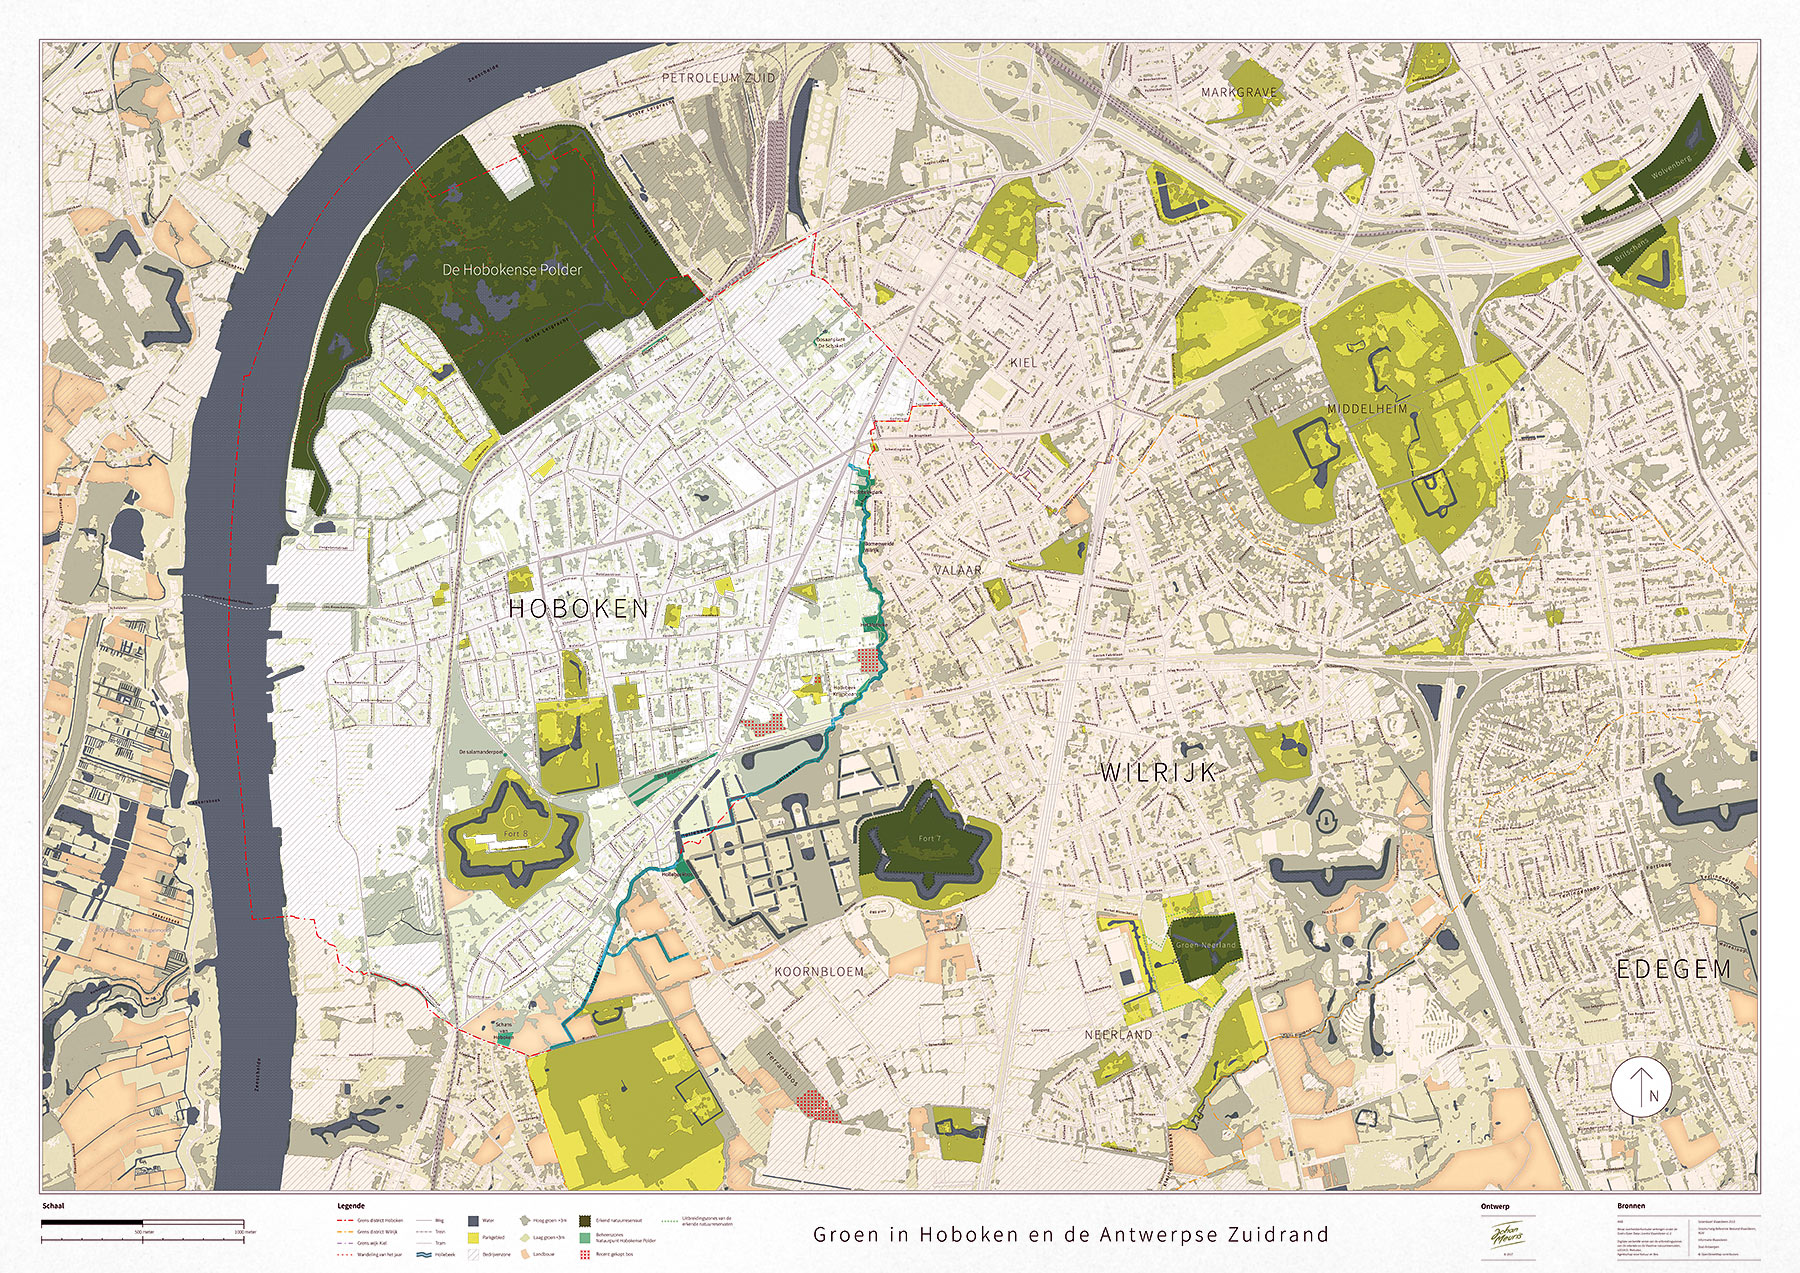 map of green spaces